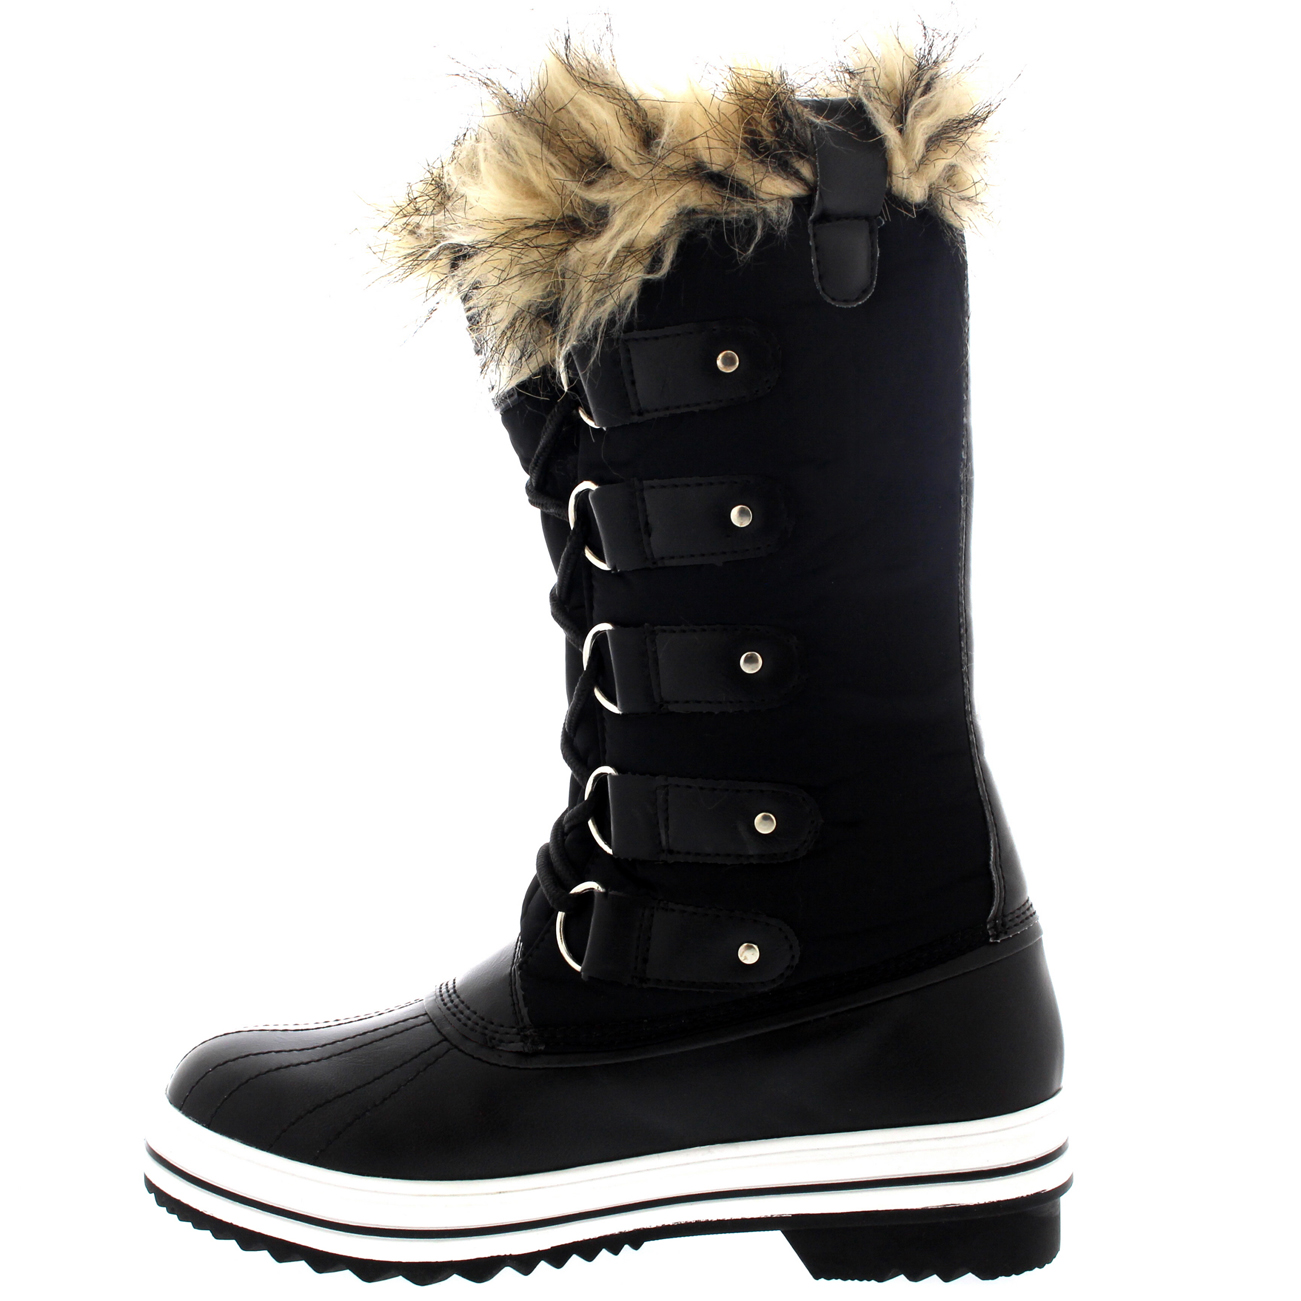 Rubber Snow Boots Womens | Santa Barbara Institute for ...